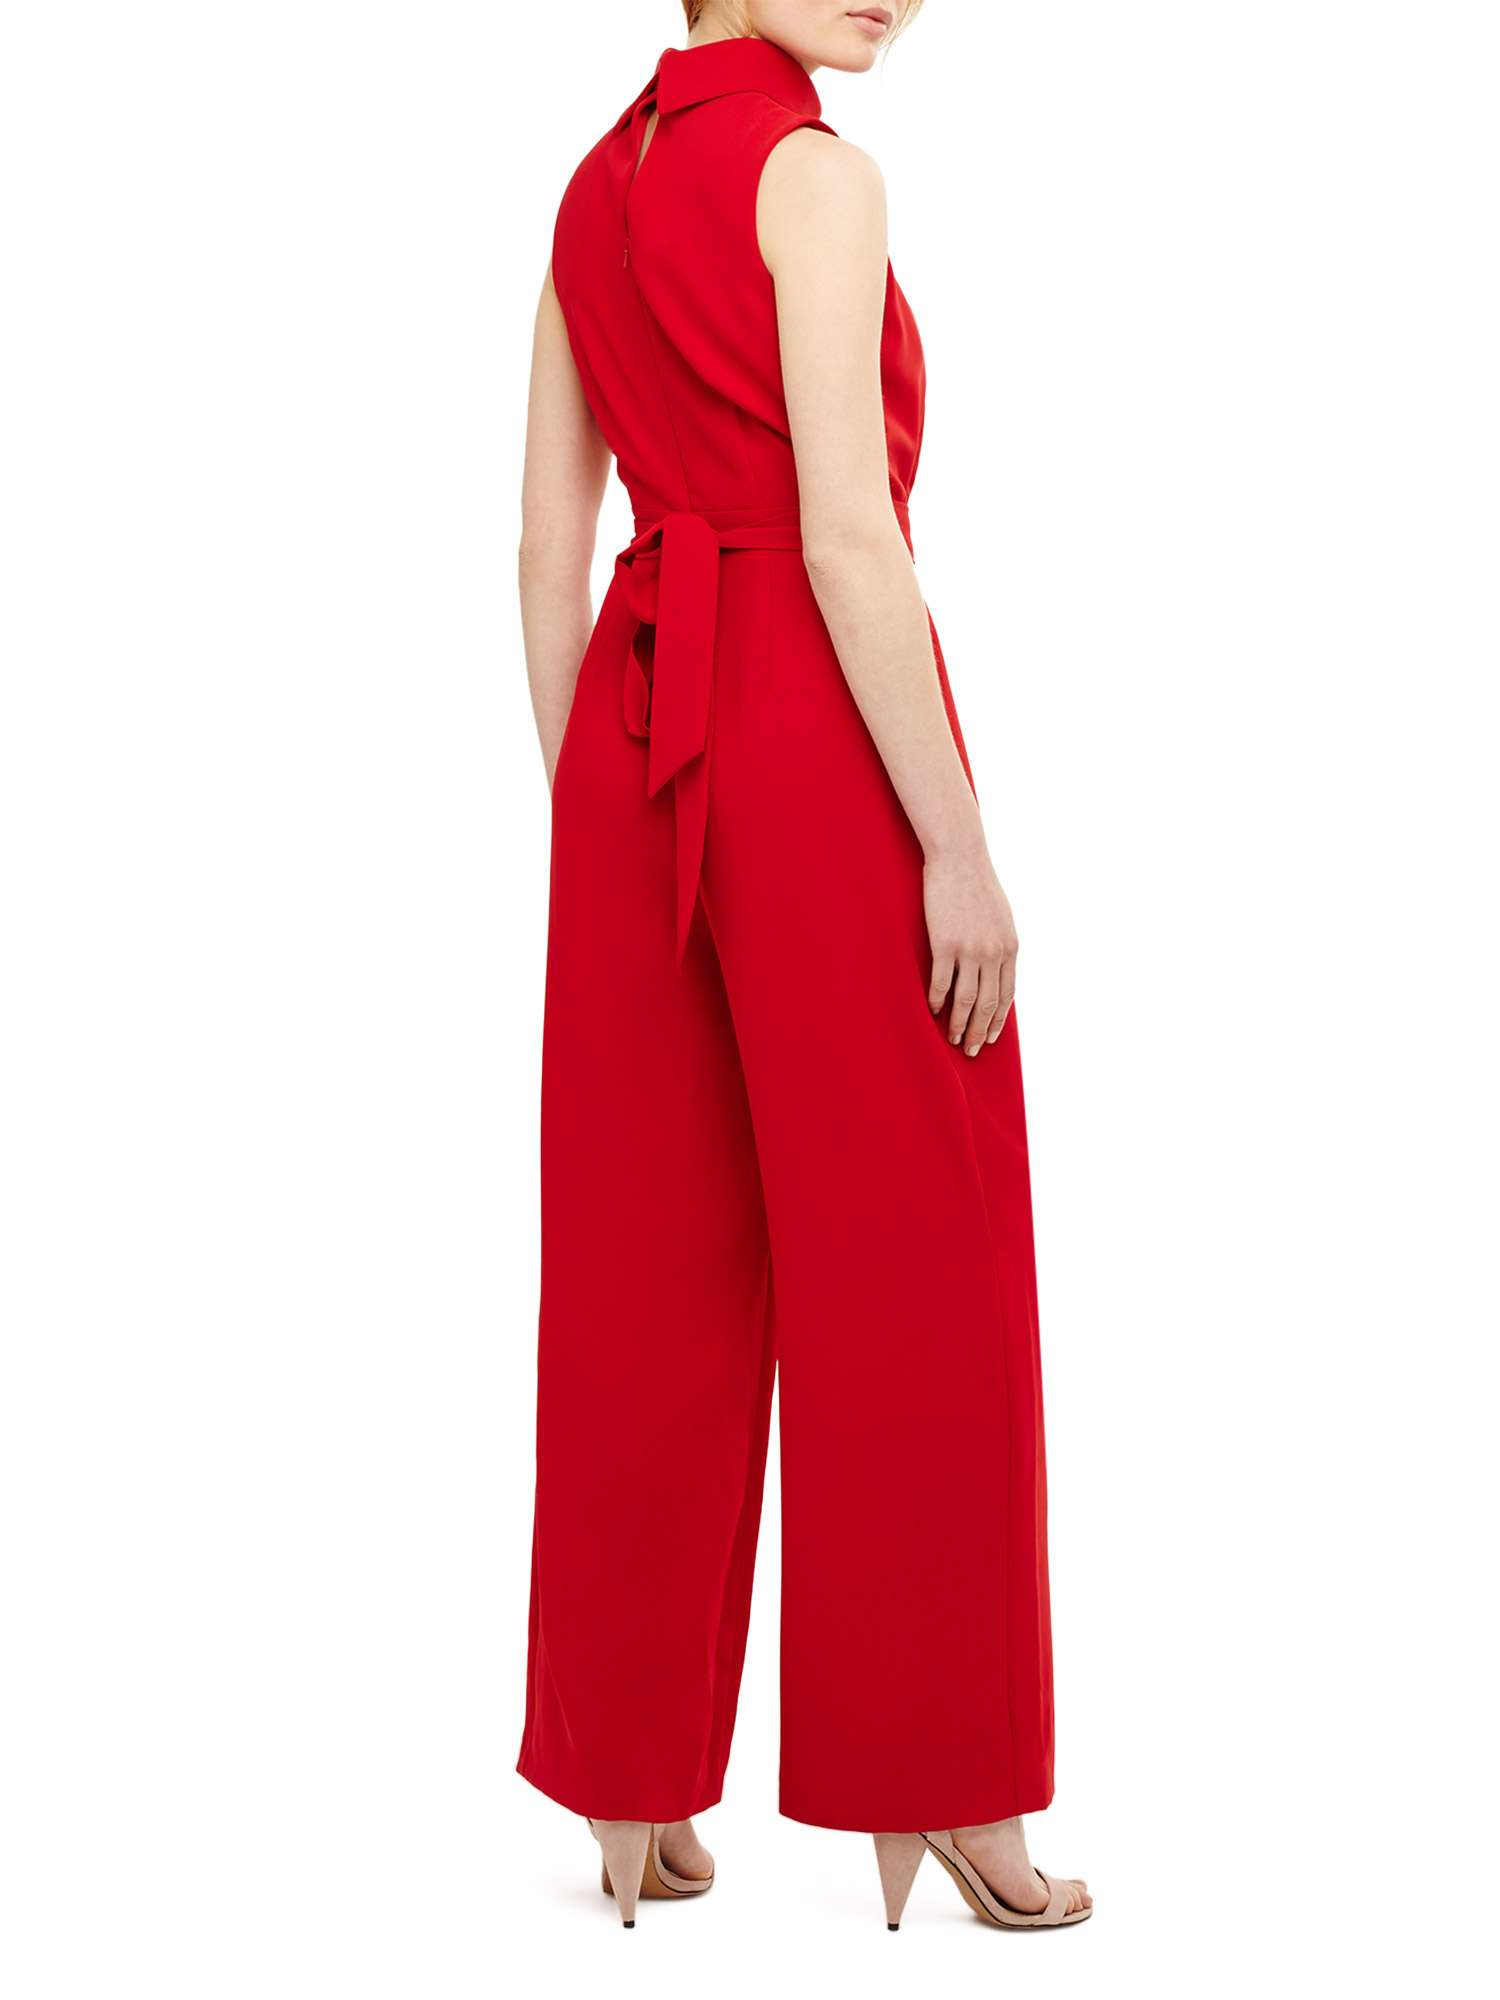 Jumpsuit Phase Neck Cressida Eight Roll qYp0Iwf